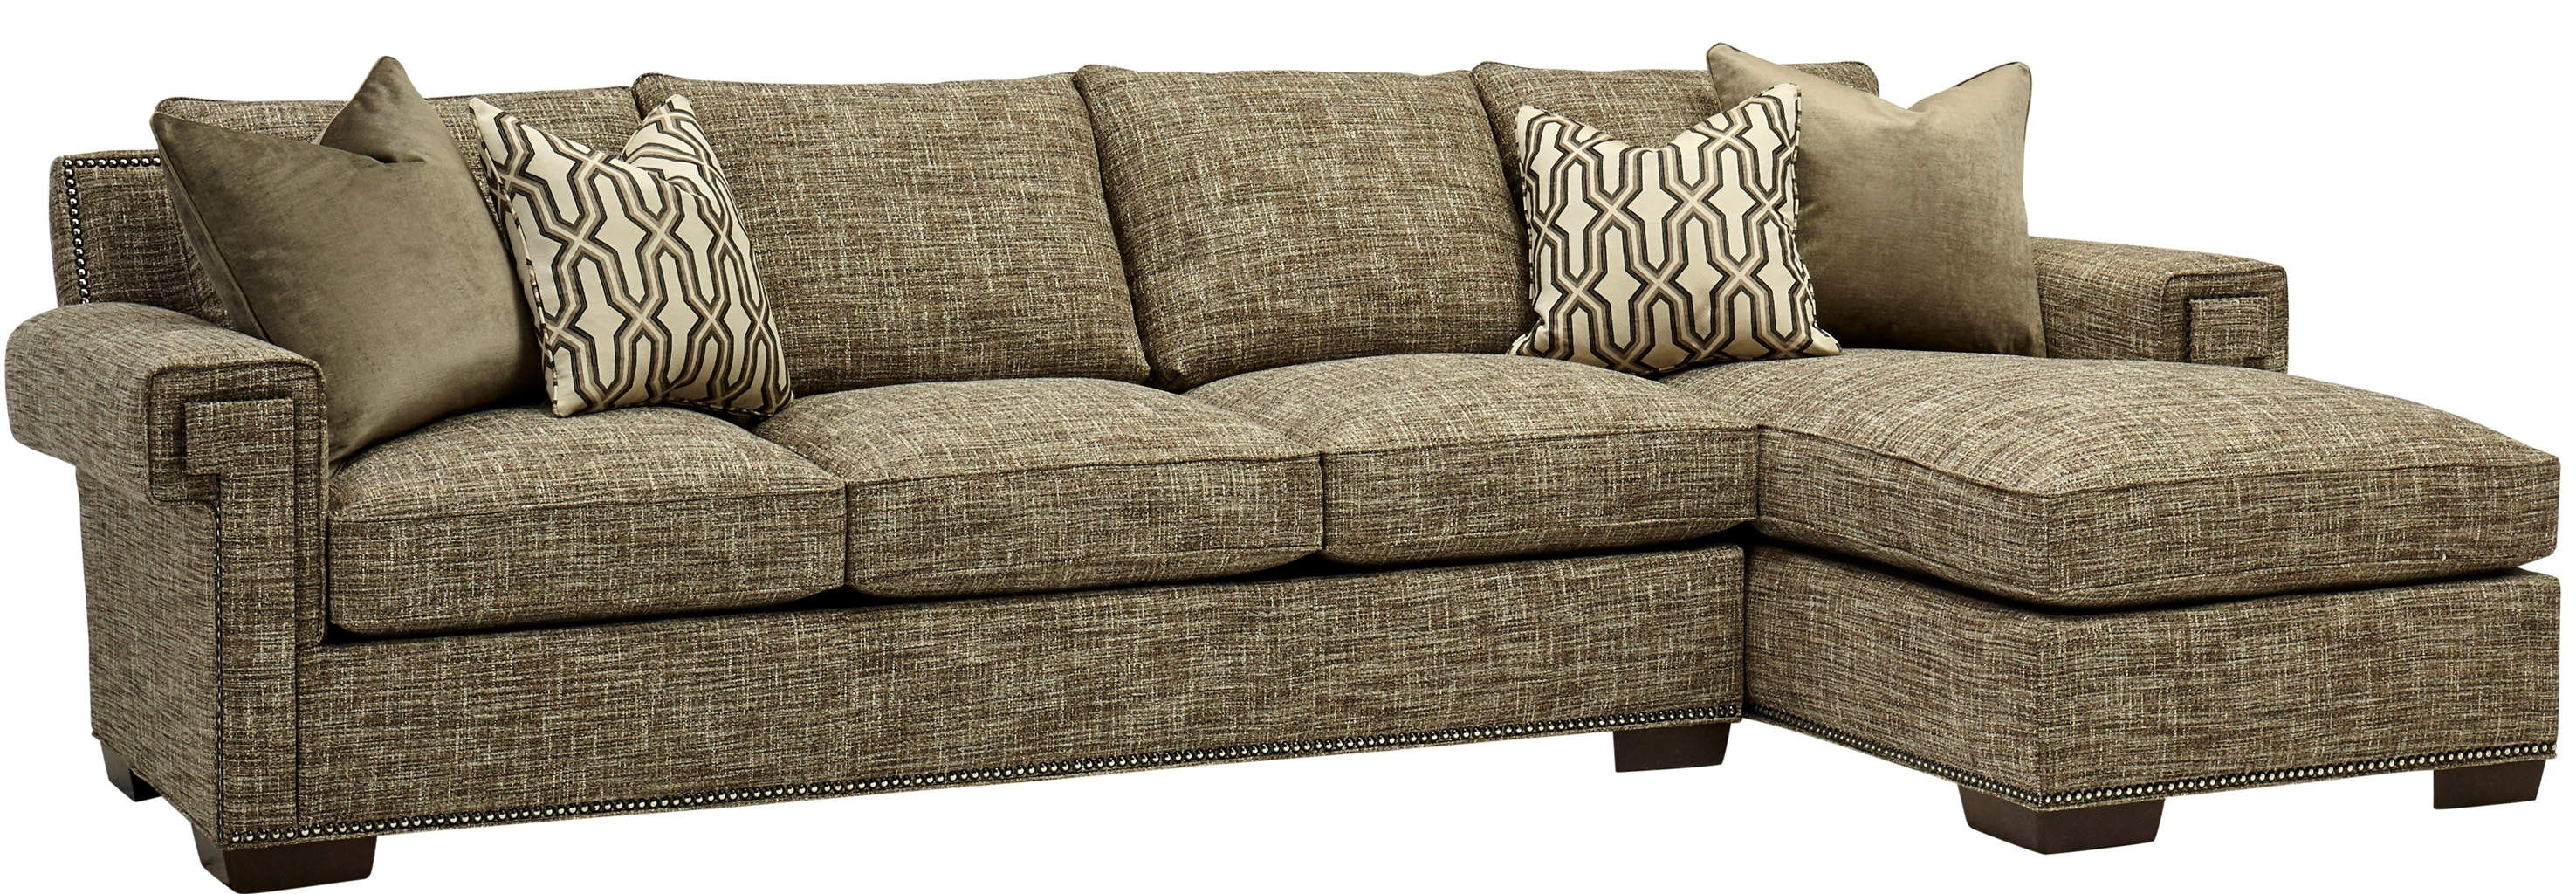 Cozy Sofa With Chaise Lounge High End Furnishings 7556